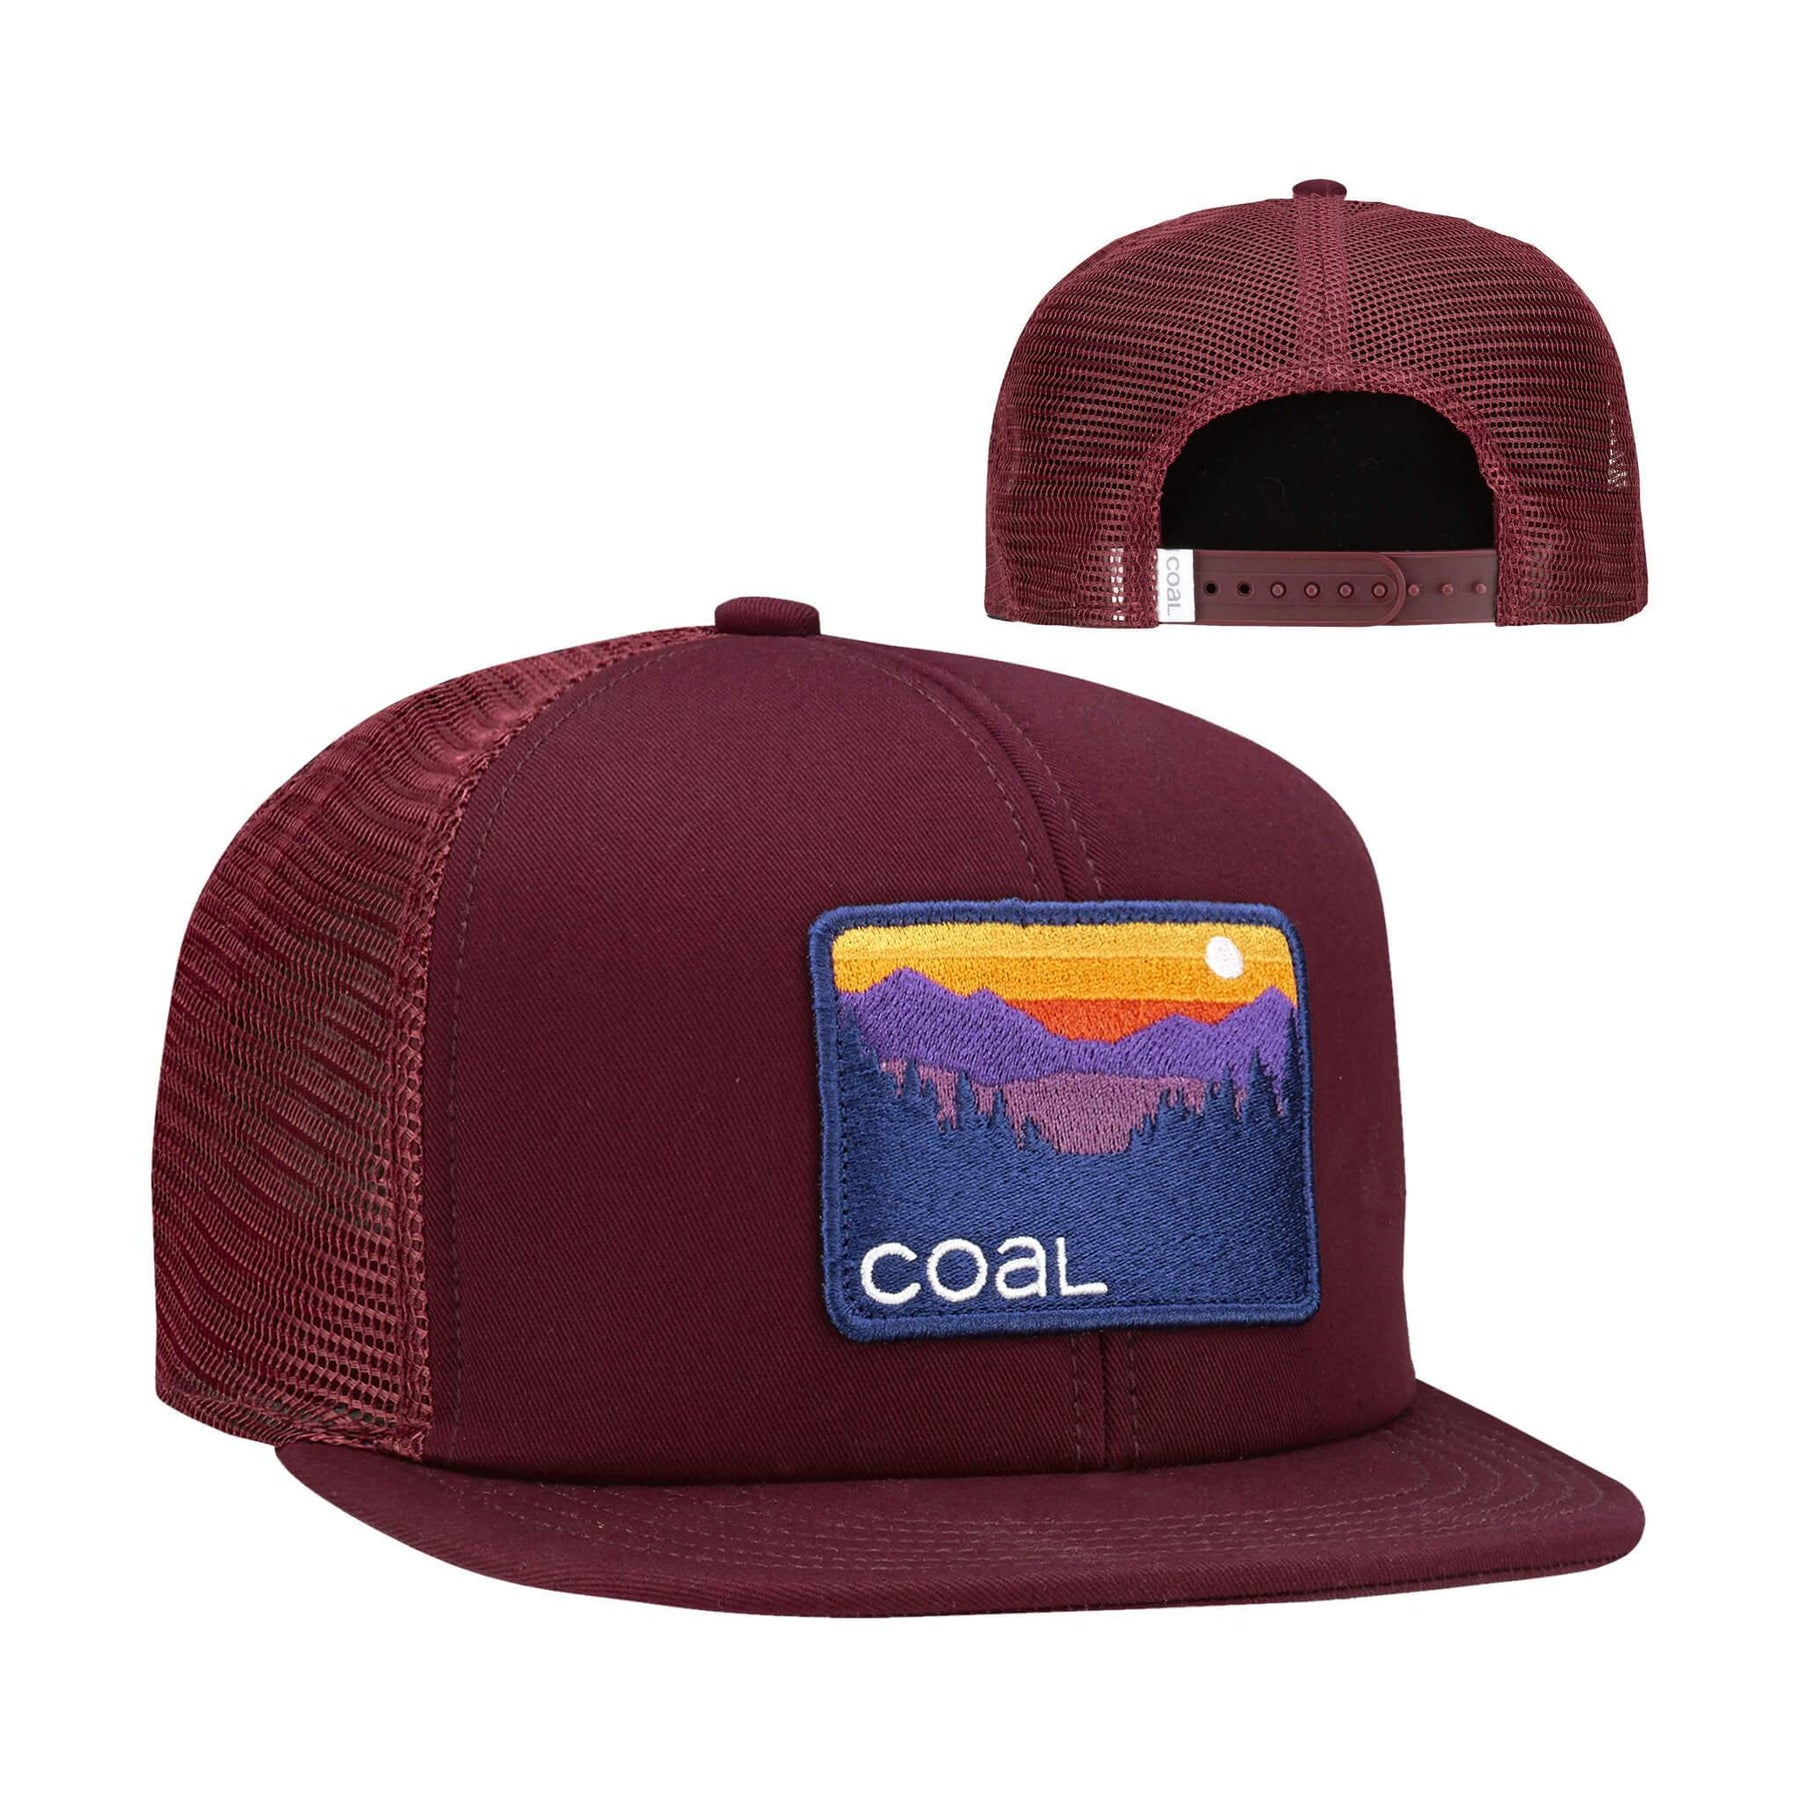 Coal Caps and beanies new styles and colors